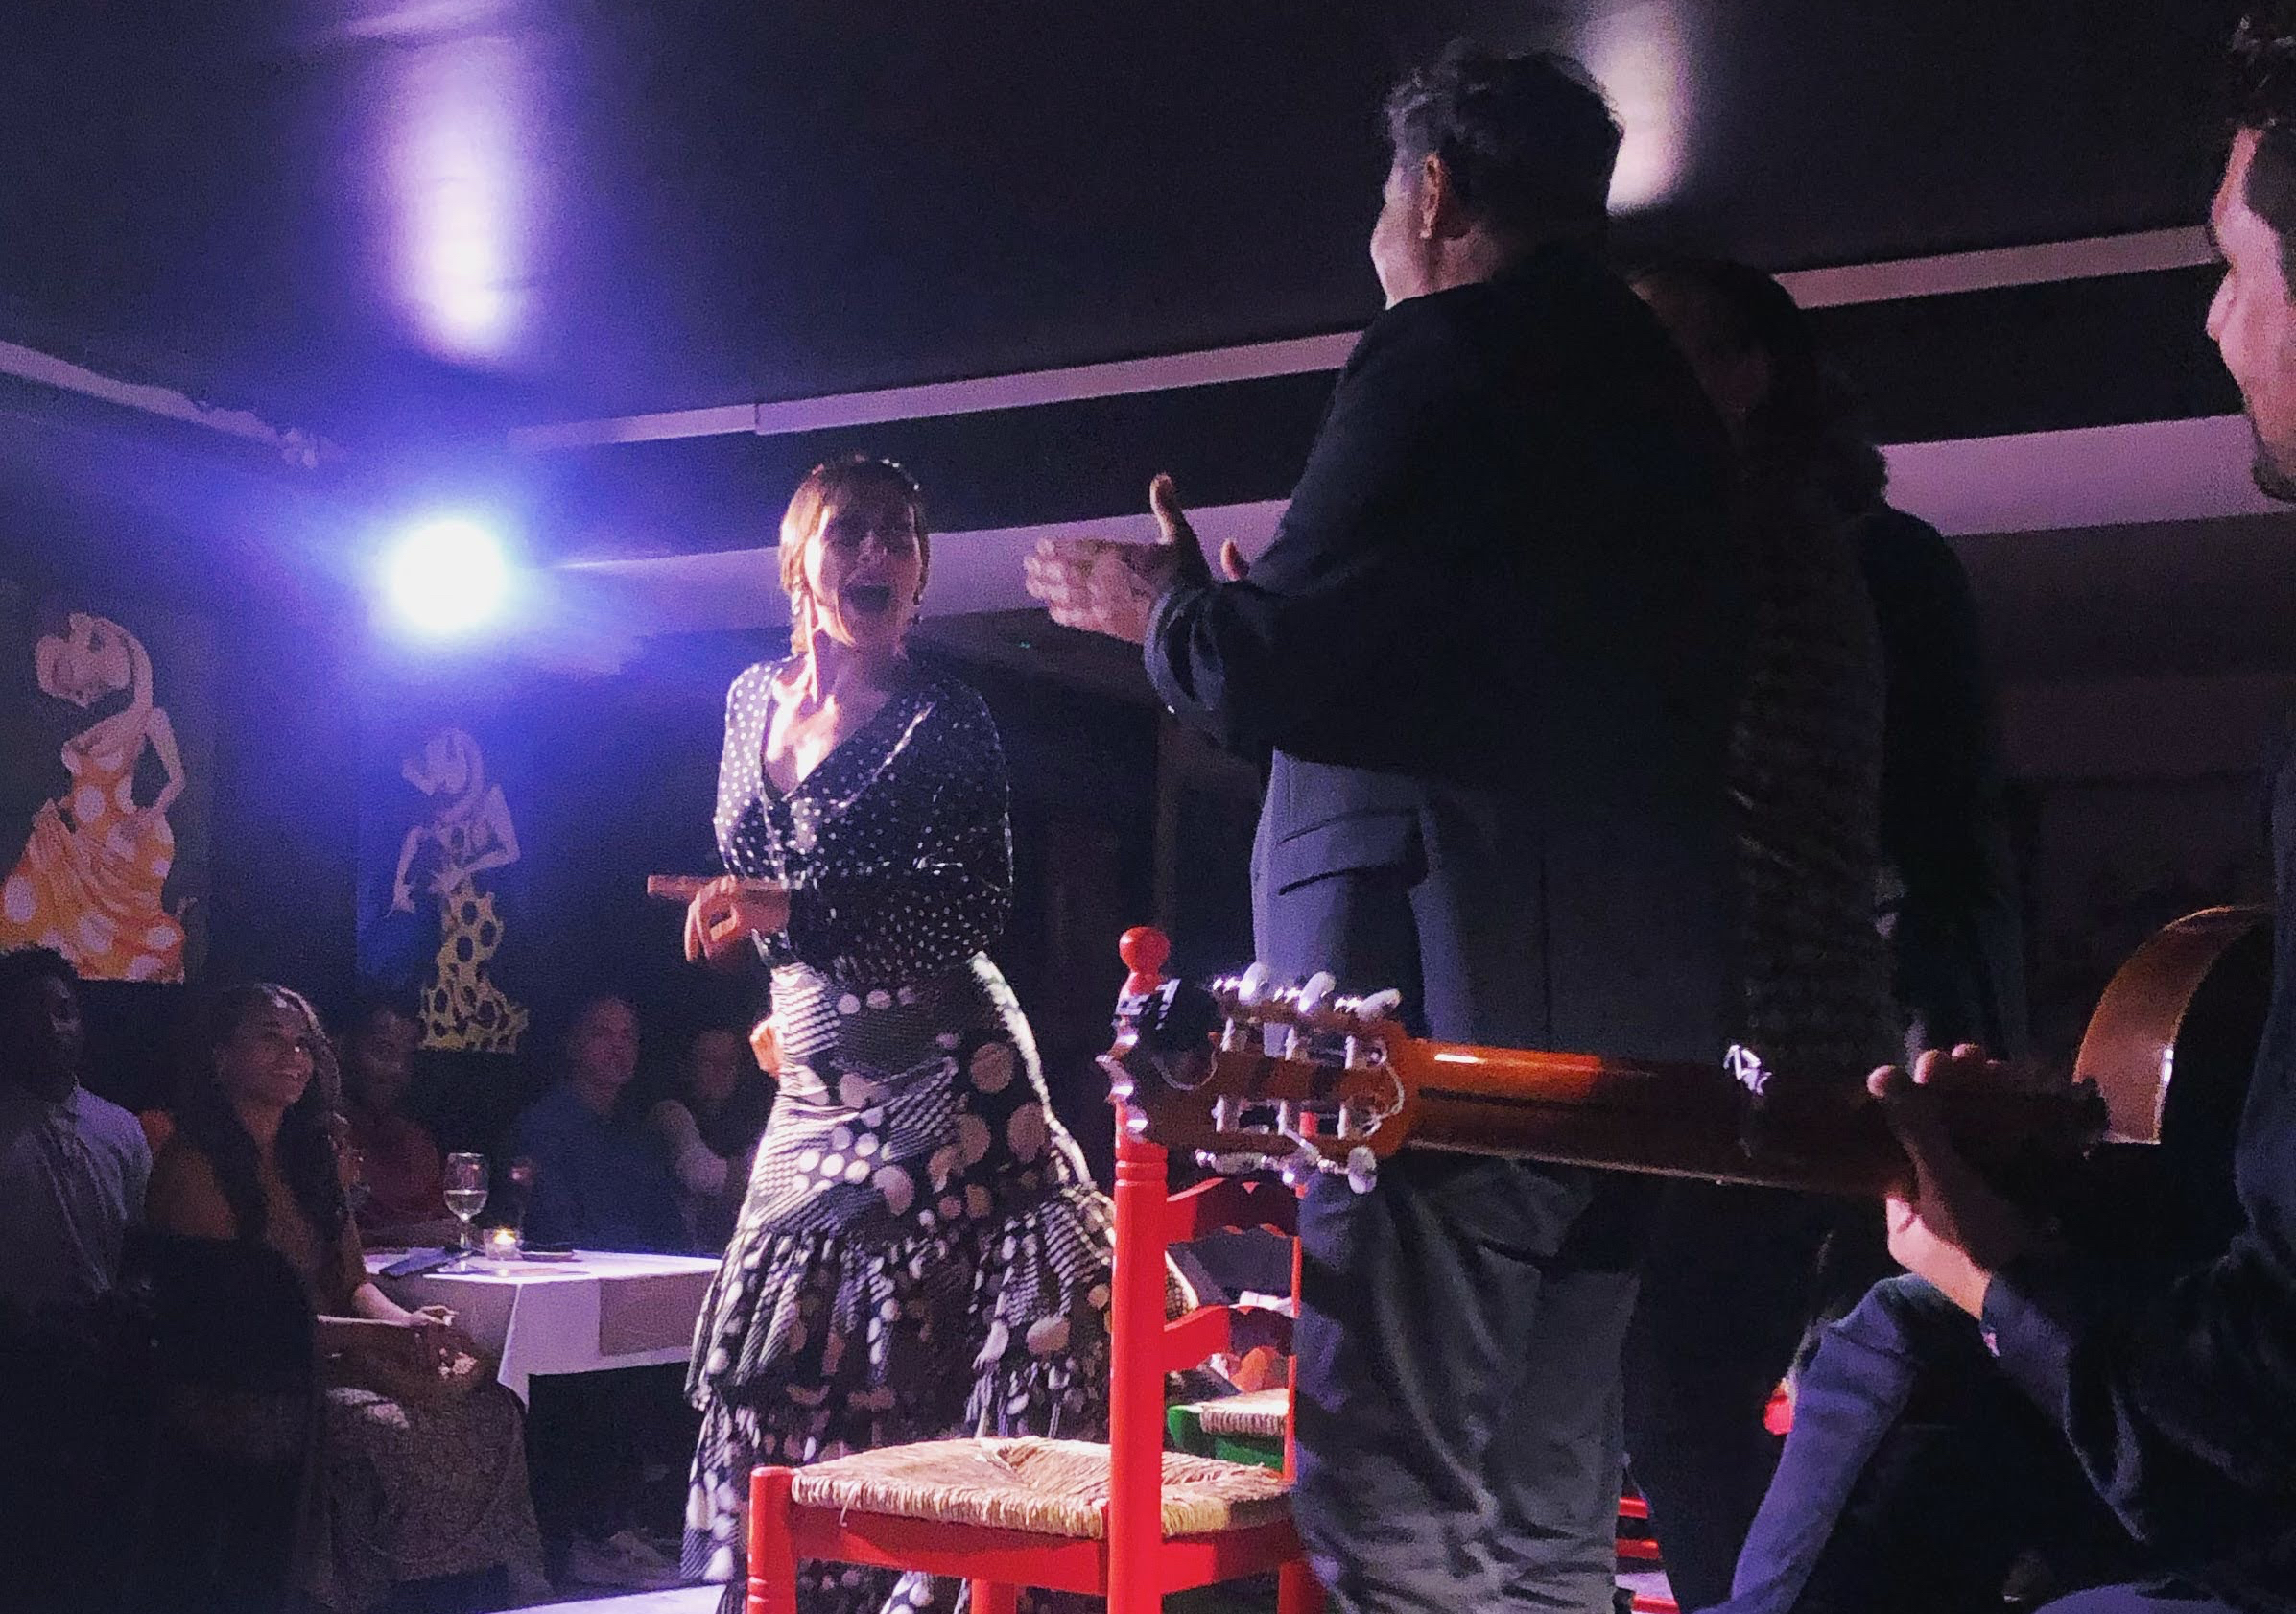 woman dancing flamenco with men on stage clapping